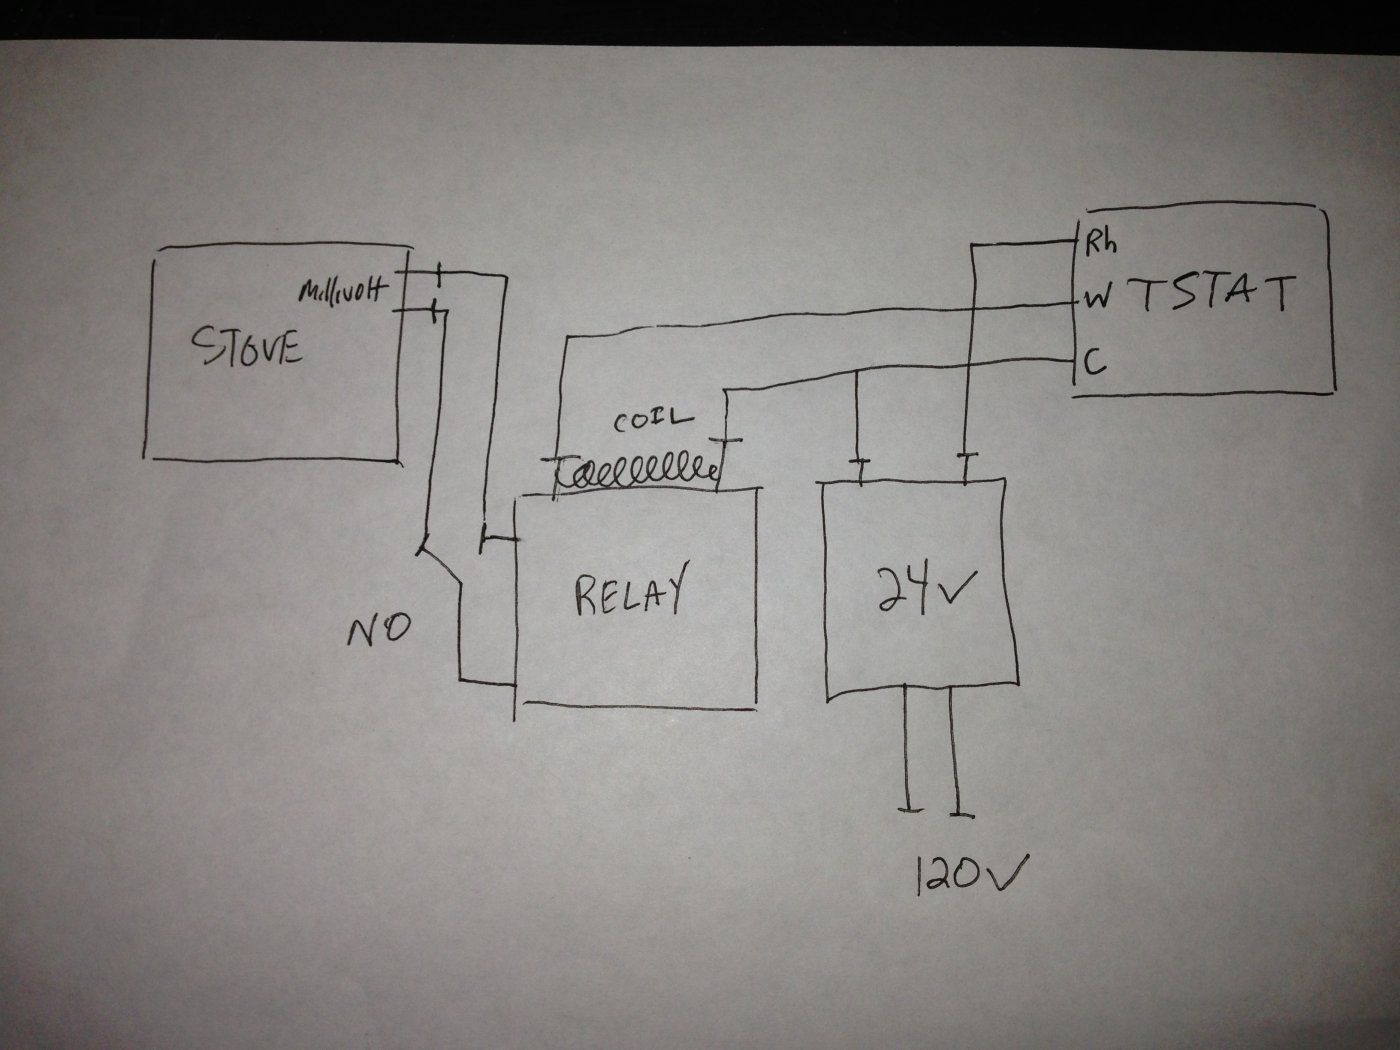 installing 24 volt wifi thermostat on millivolt stoves page 4 rib relay wiring diagram at eliteediting.co